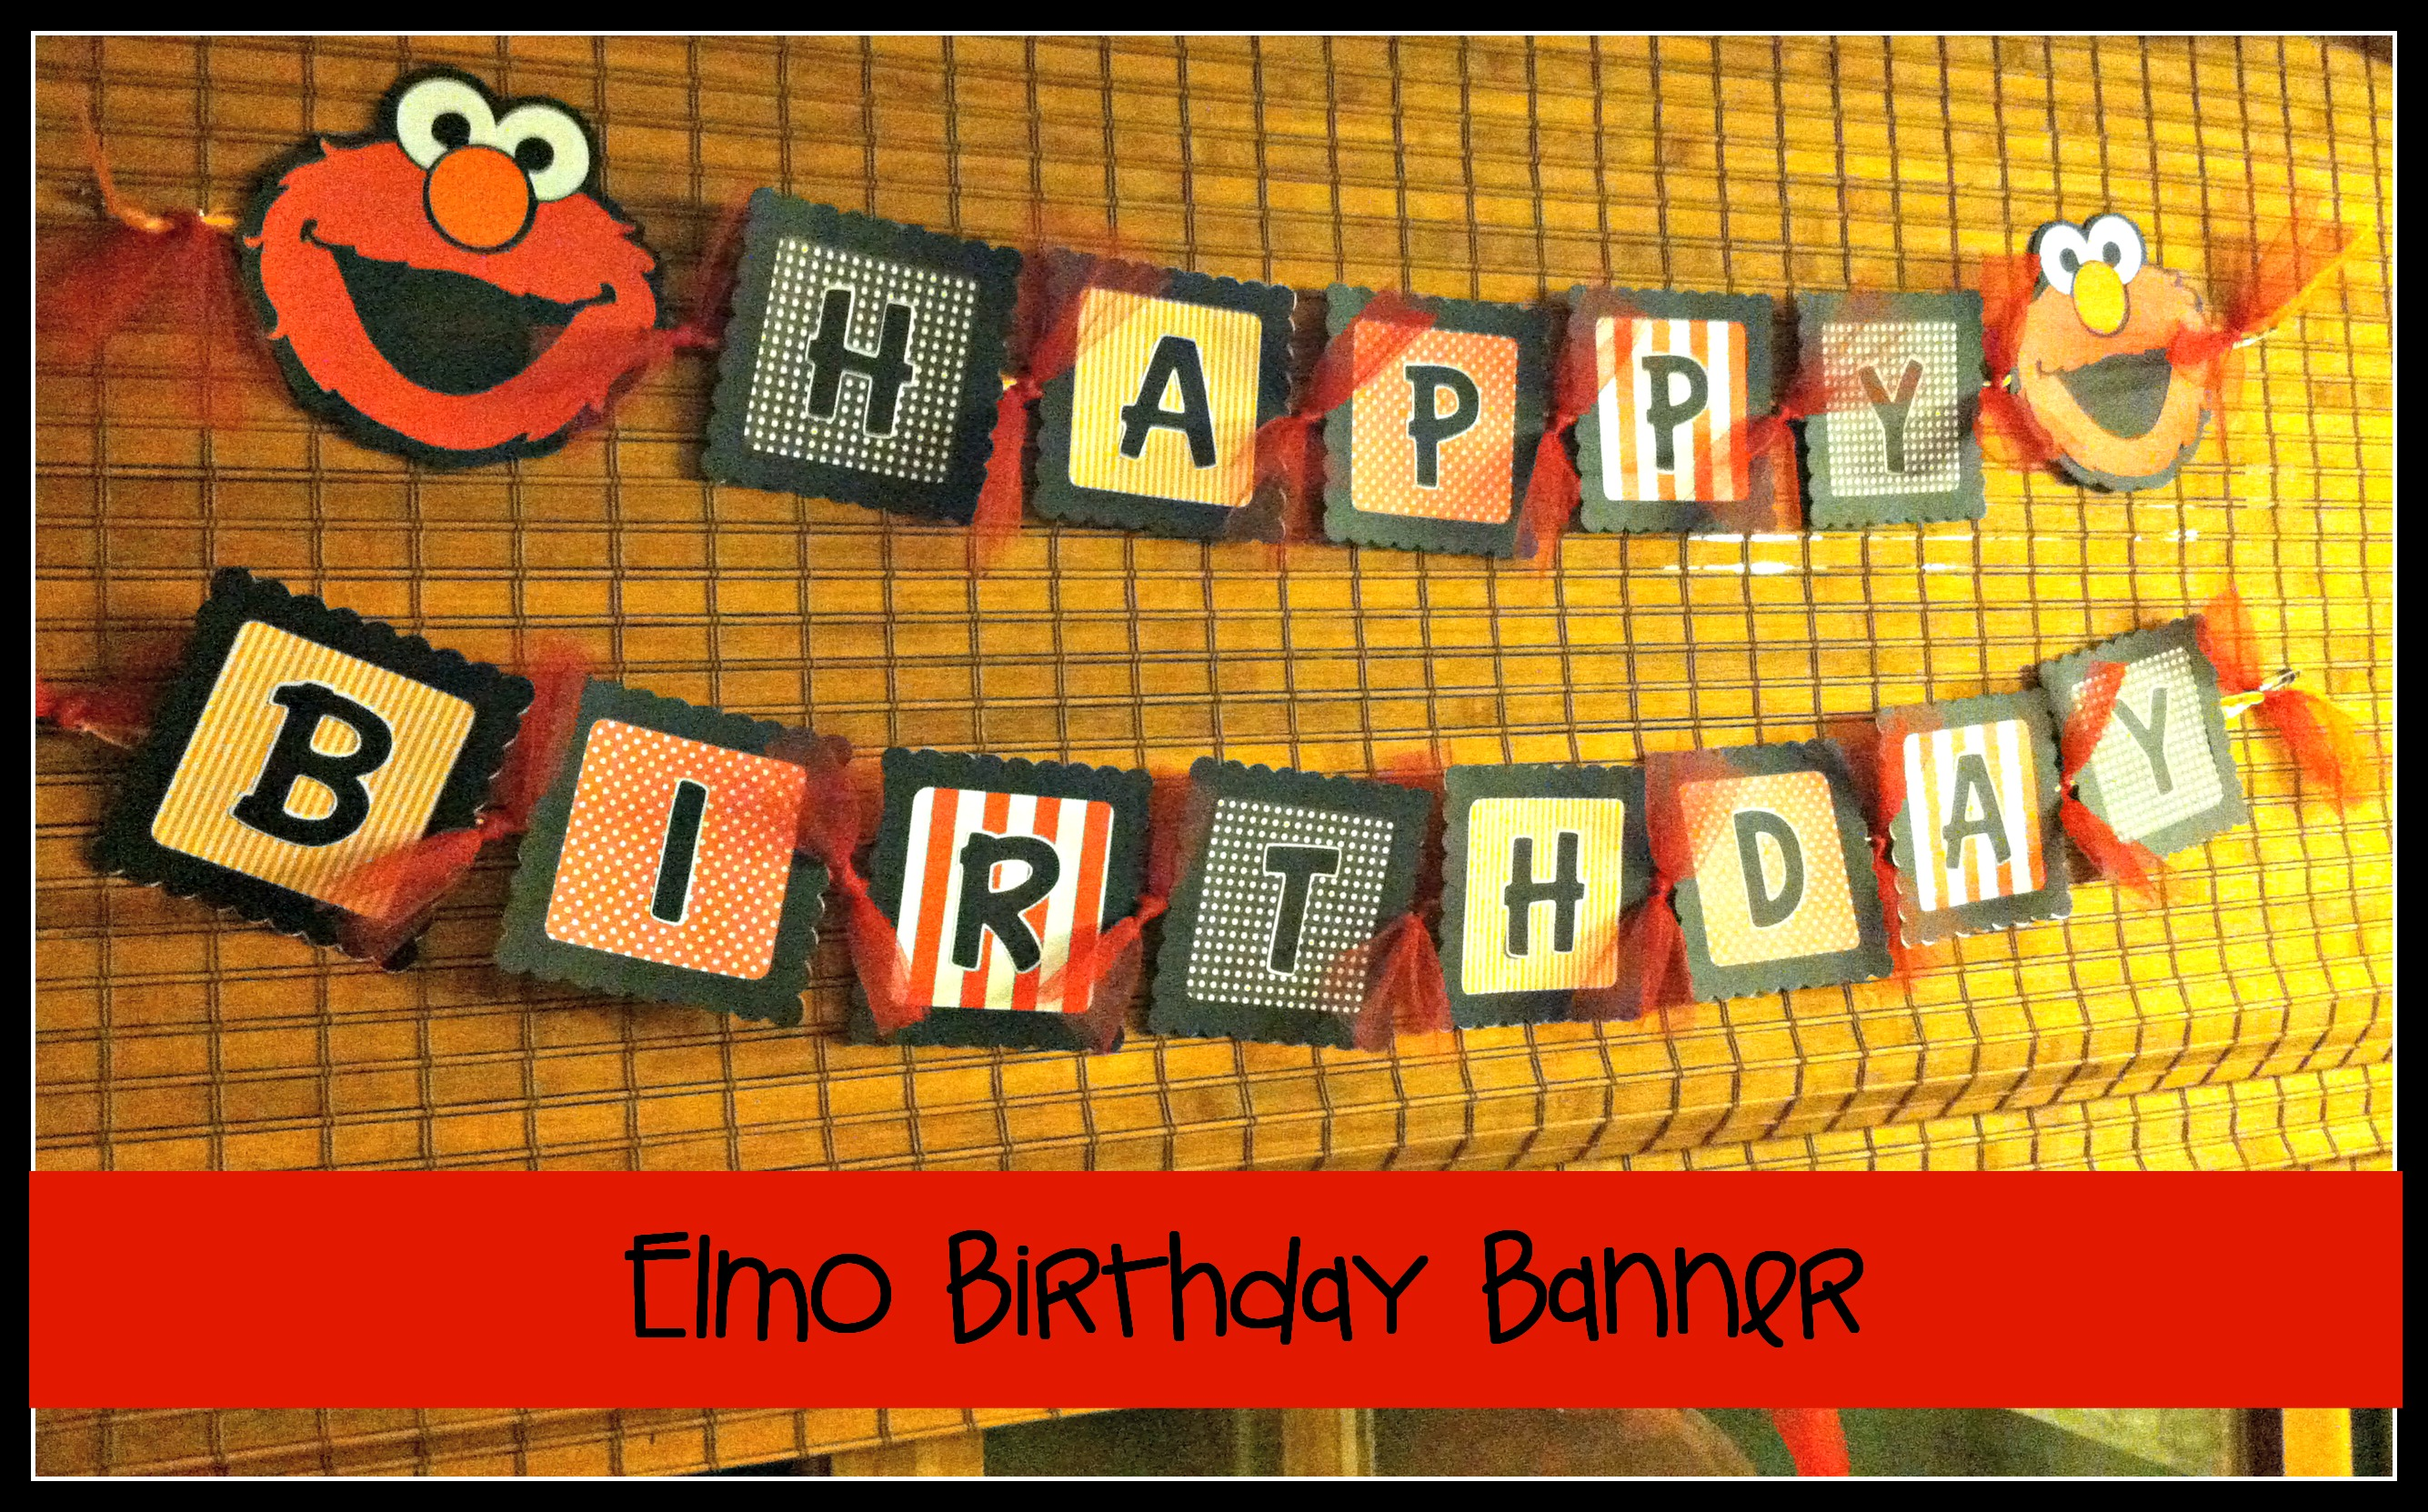 Elmo Birthday Banner 017 Tidbit Times